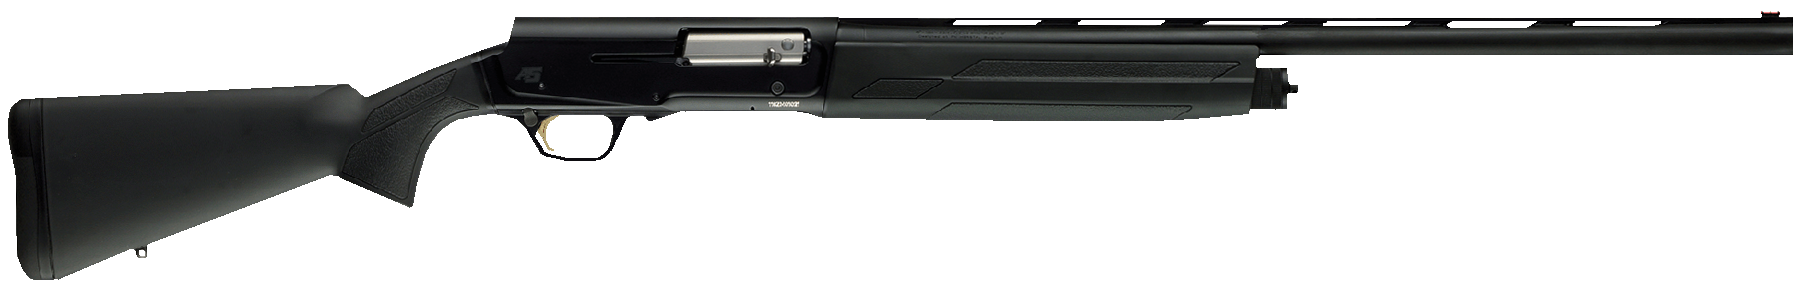 Browning A5 Stalker Semi-Auto Shotgun 3'' 12 Gauge 26'' Black Aluminum Alloy - Synthetic - Black